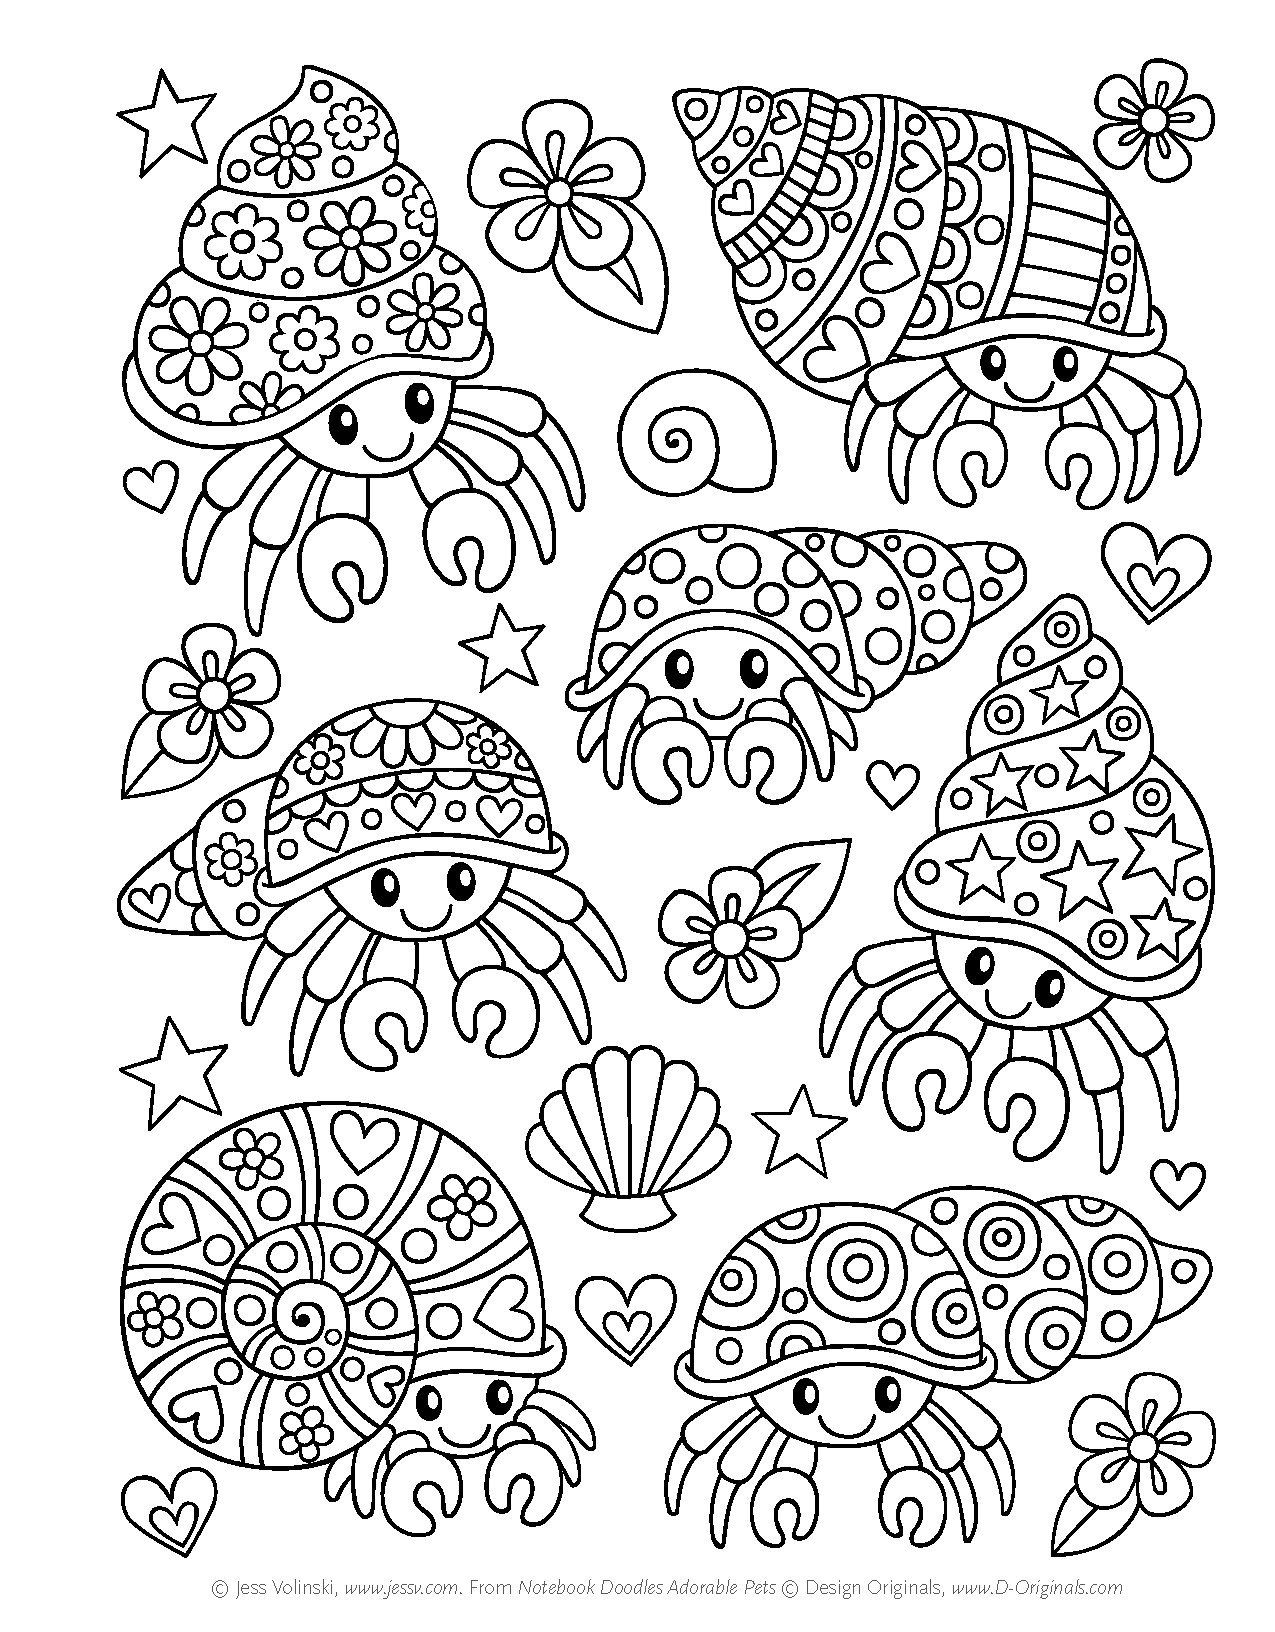 Notebook Doodles Adorable Pets Coloring